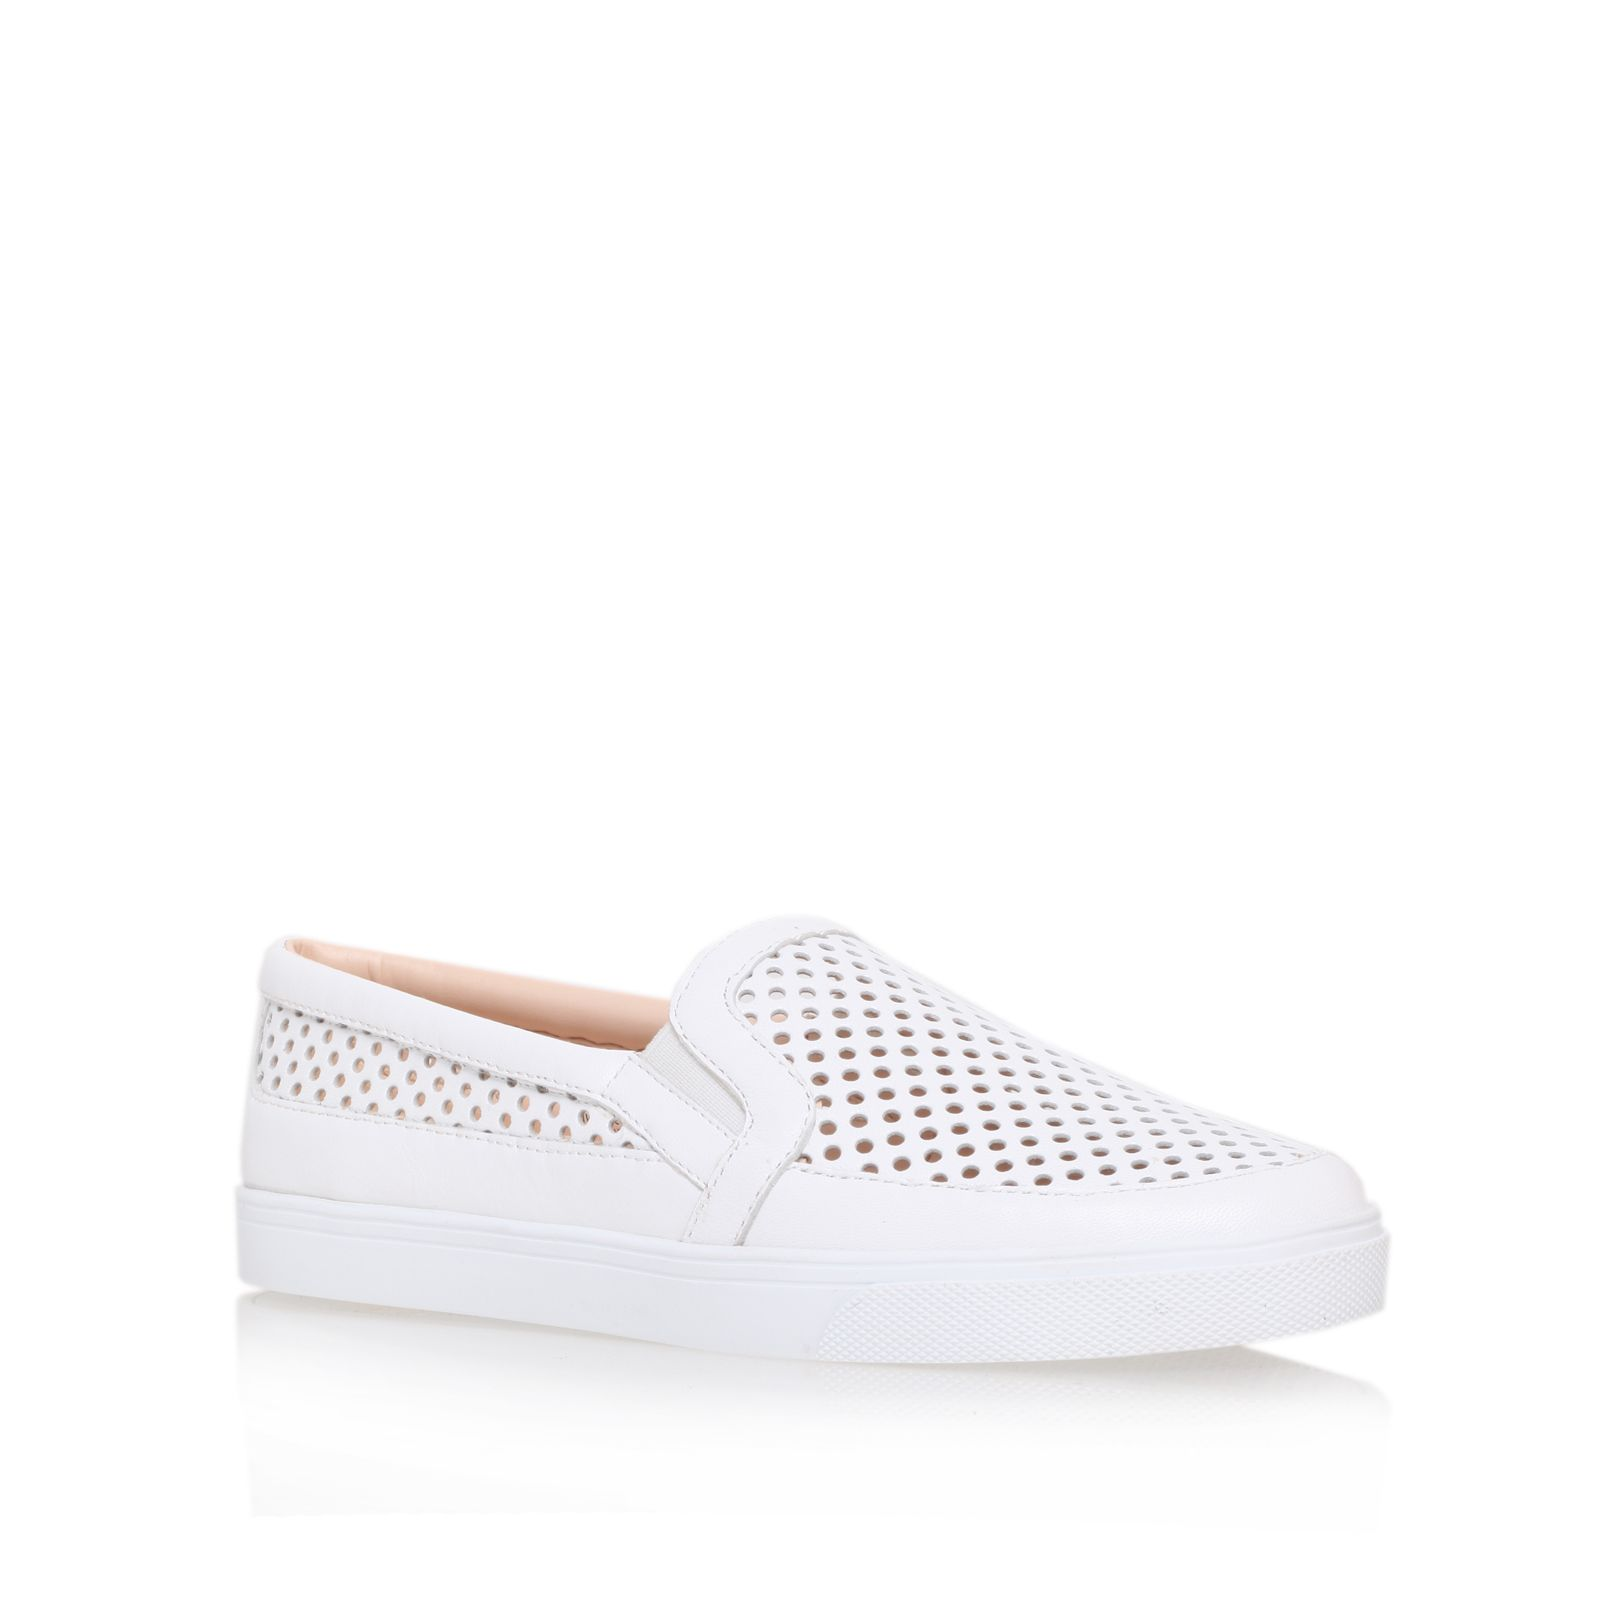 Brodie flat low top trainers